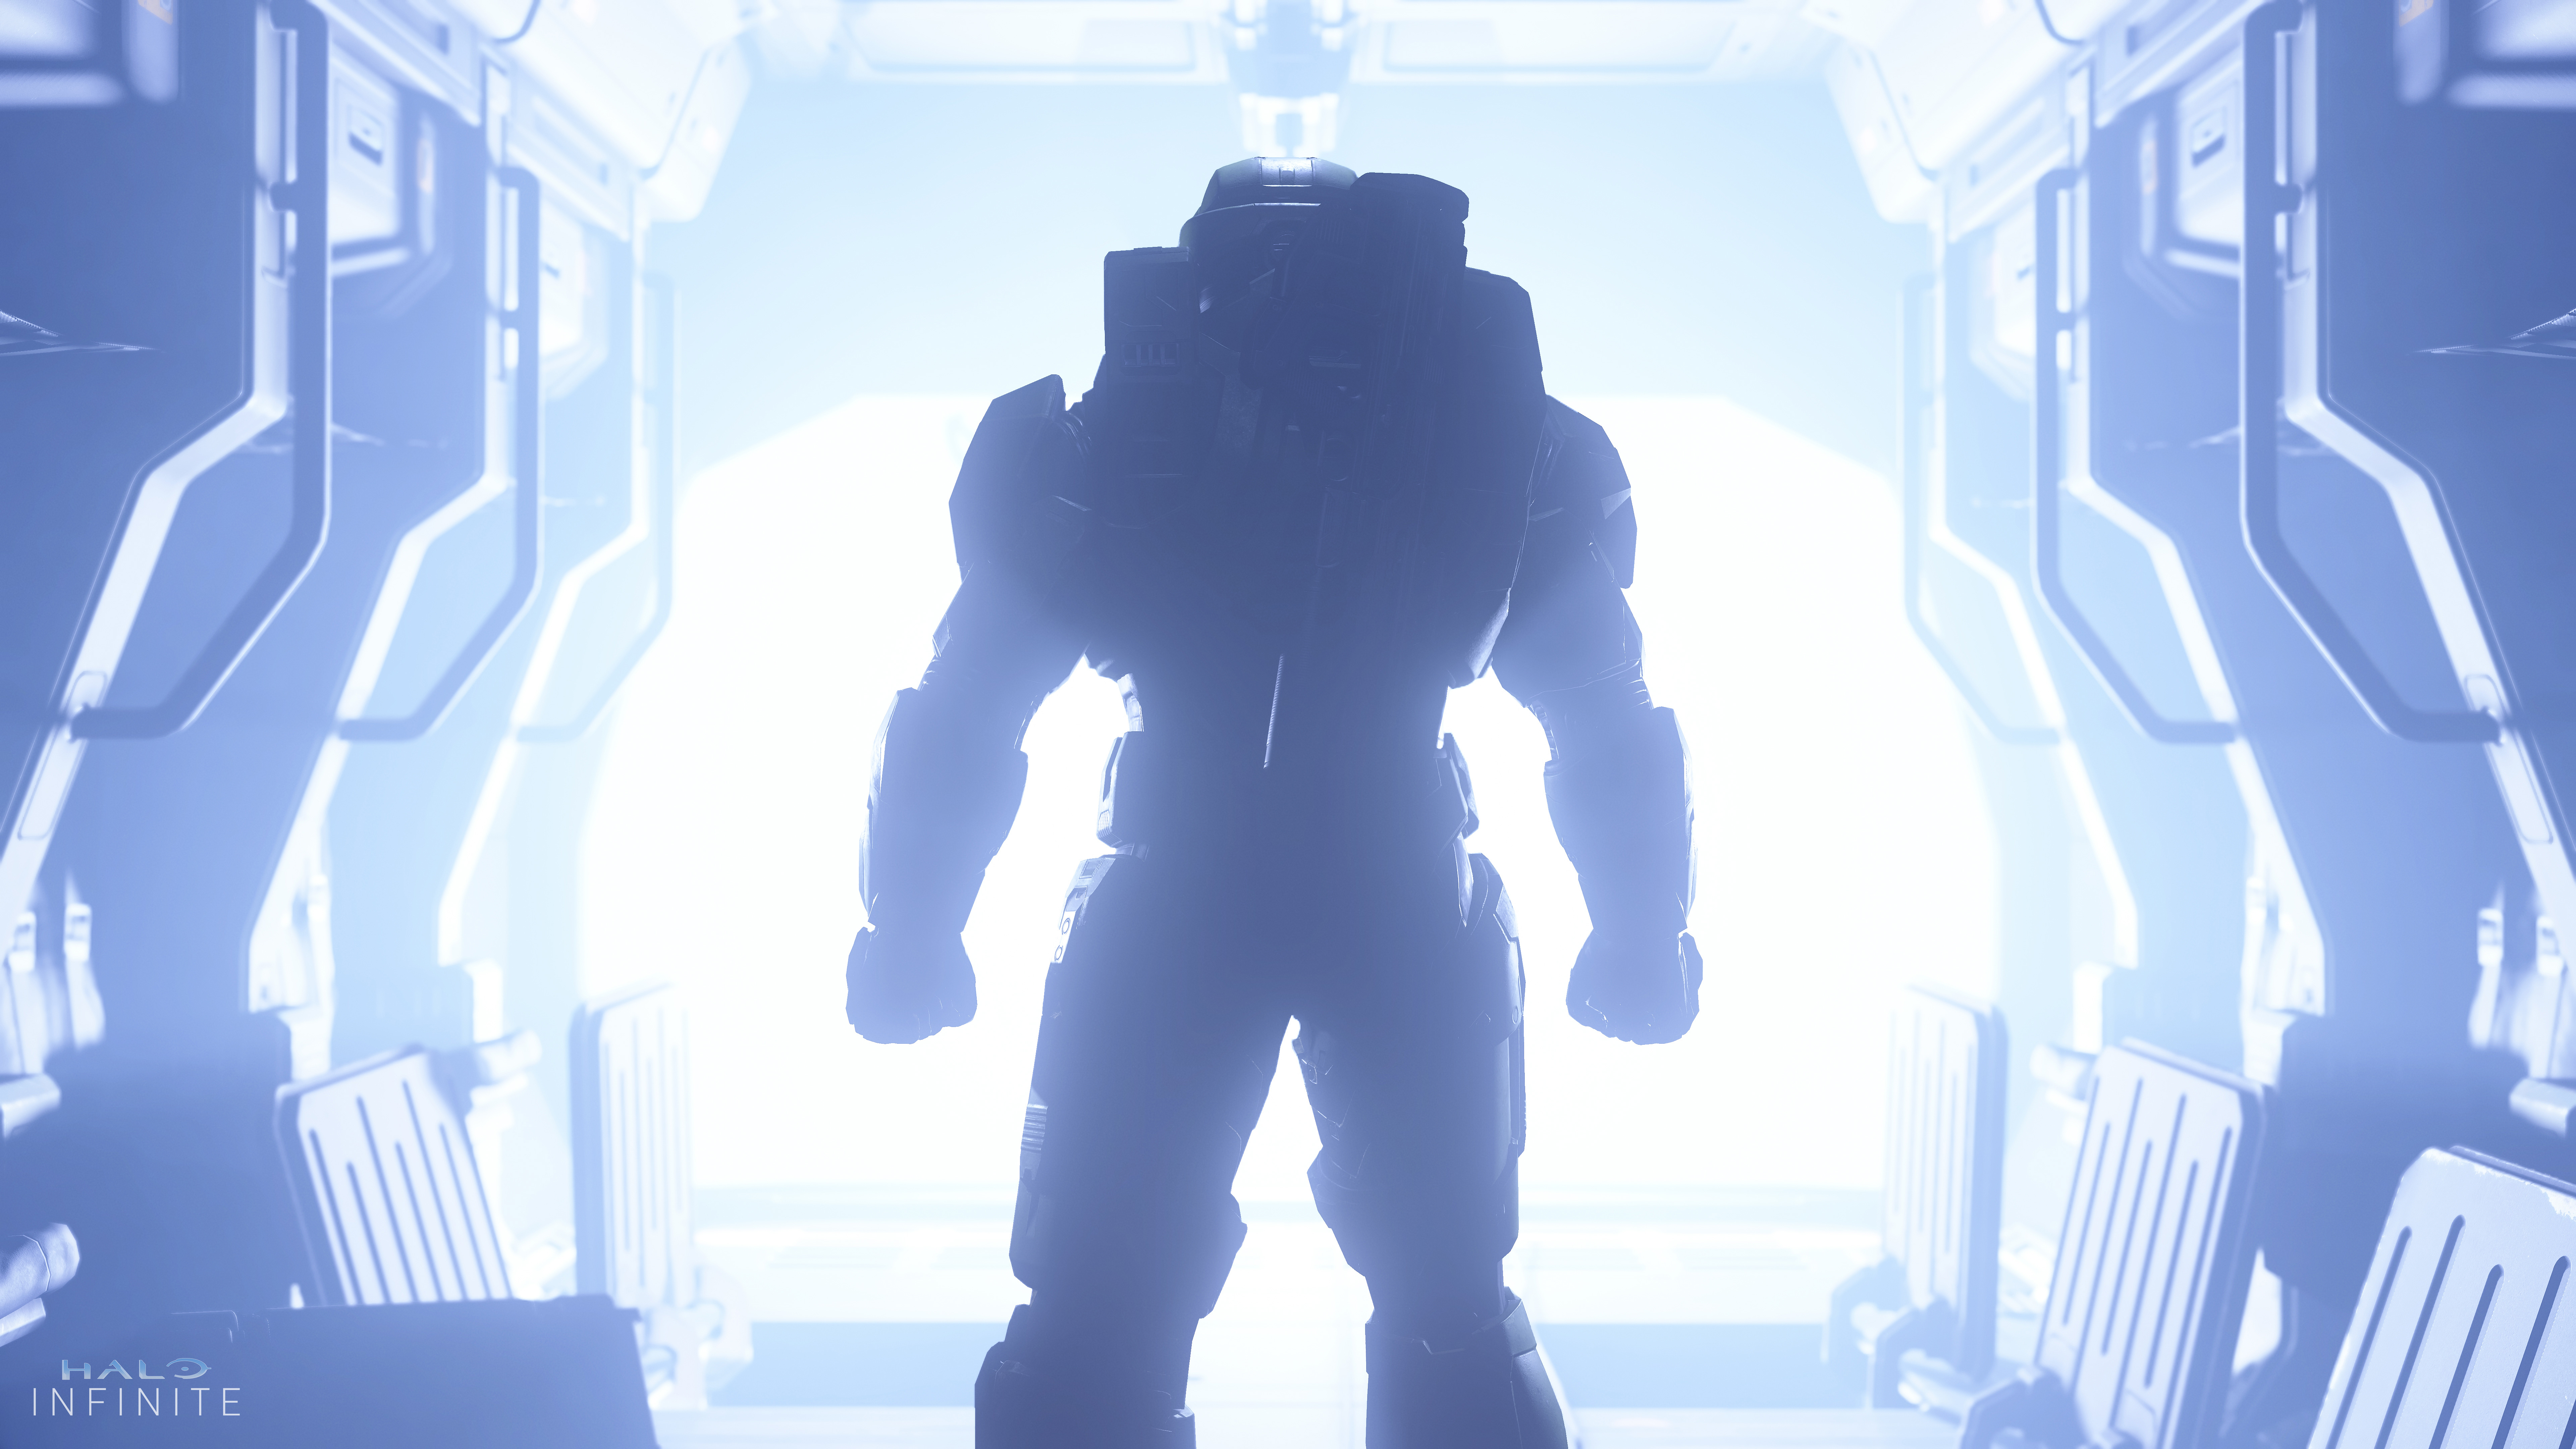 an image of Master Chief from behind, standing at the opening of a spaceship bay with blue light flooding in, in Halo Infinite